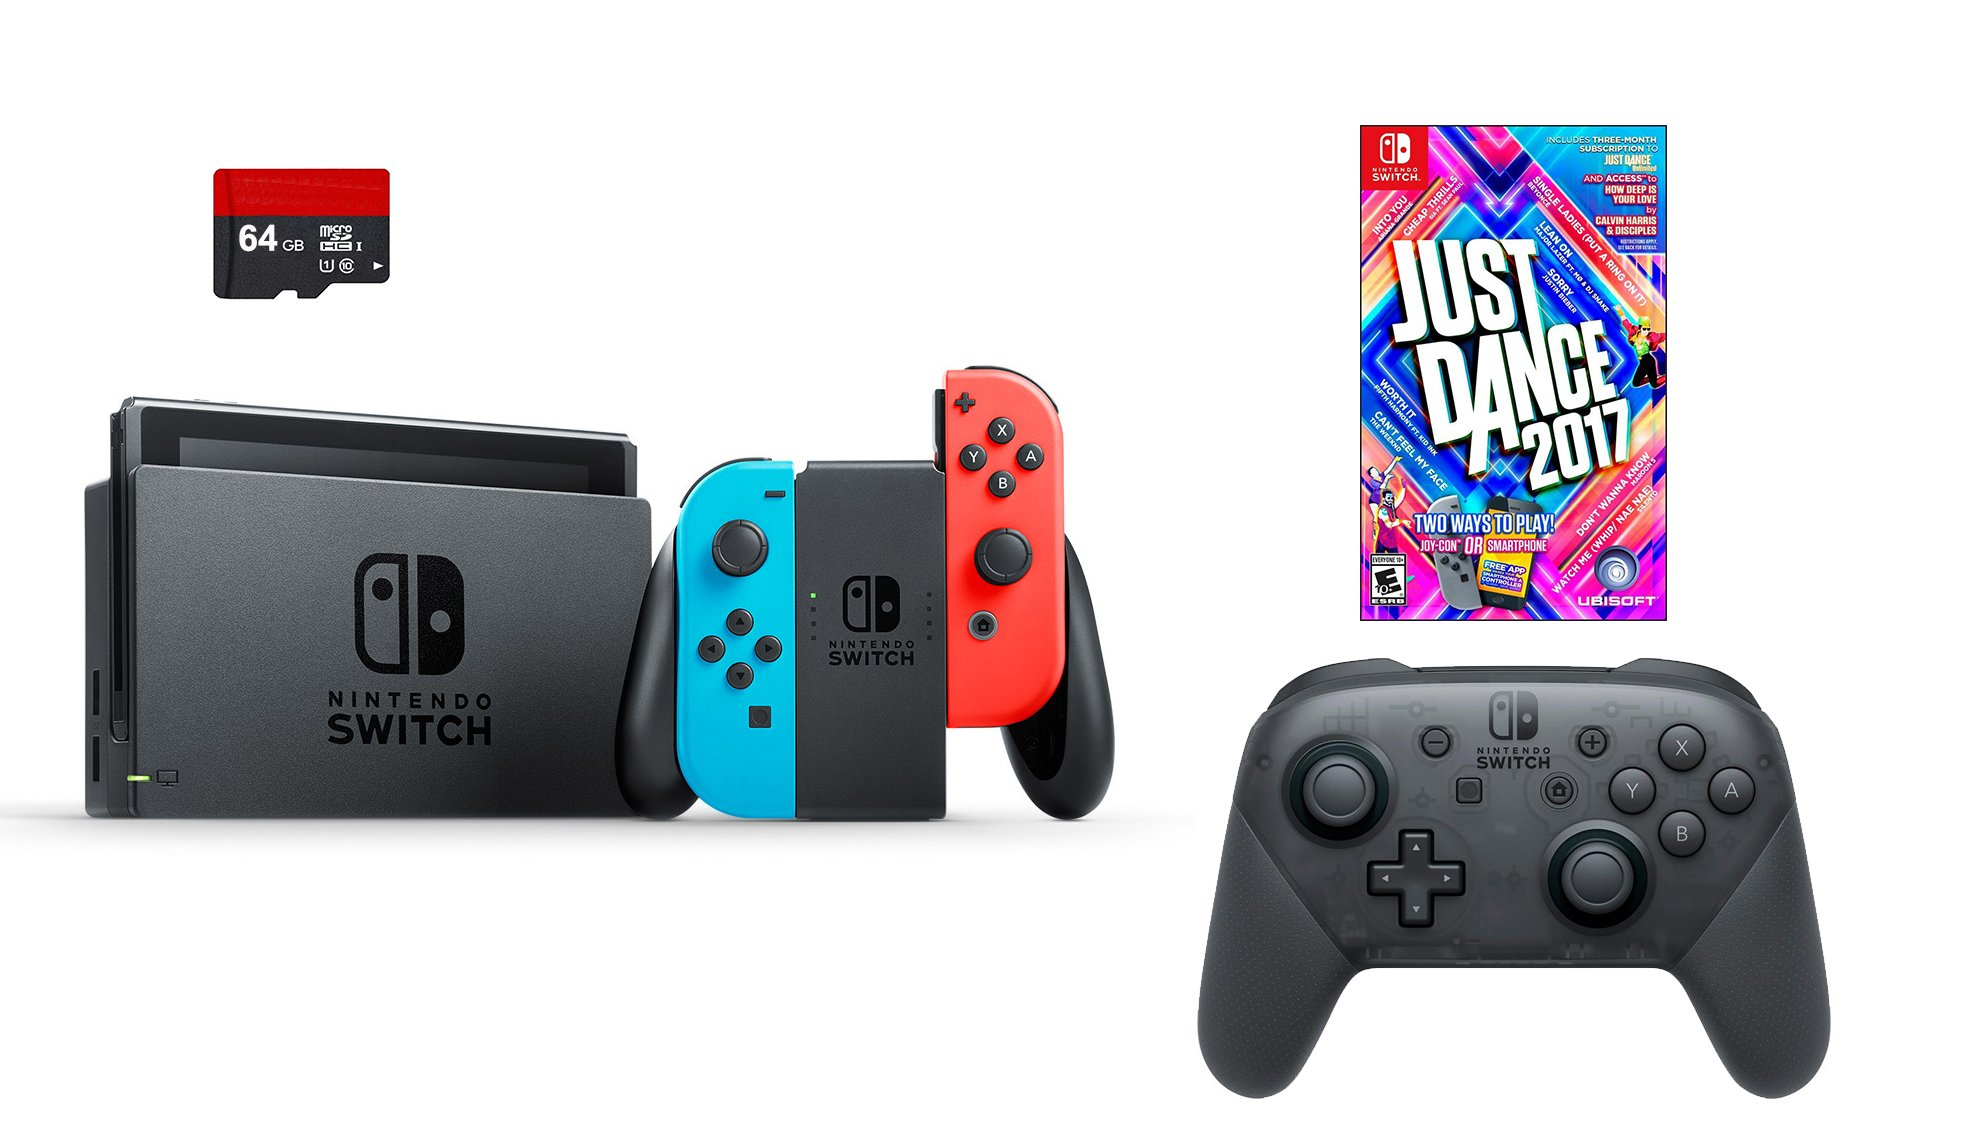 Nintendo Switch 4 items Bundle:Nintendo Switch 32GB Console Neon Red and Blue Joy-con,64GB Micro SD Memory Card and an Extra Nintendo Switch Pro Wireless Controller,Just Dance 2017